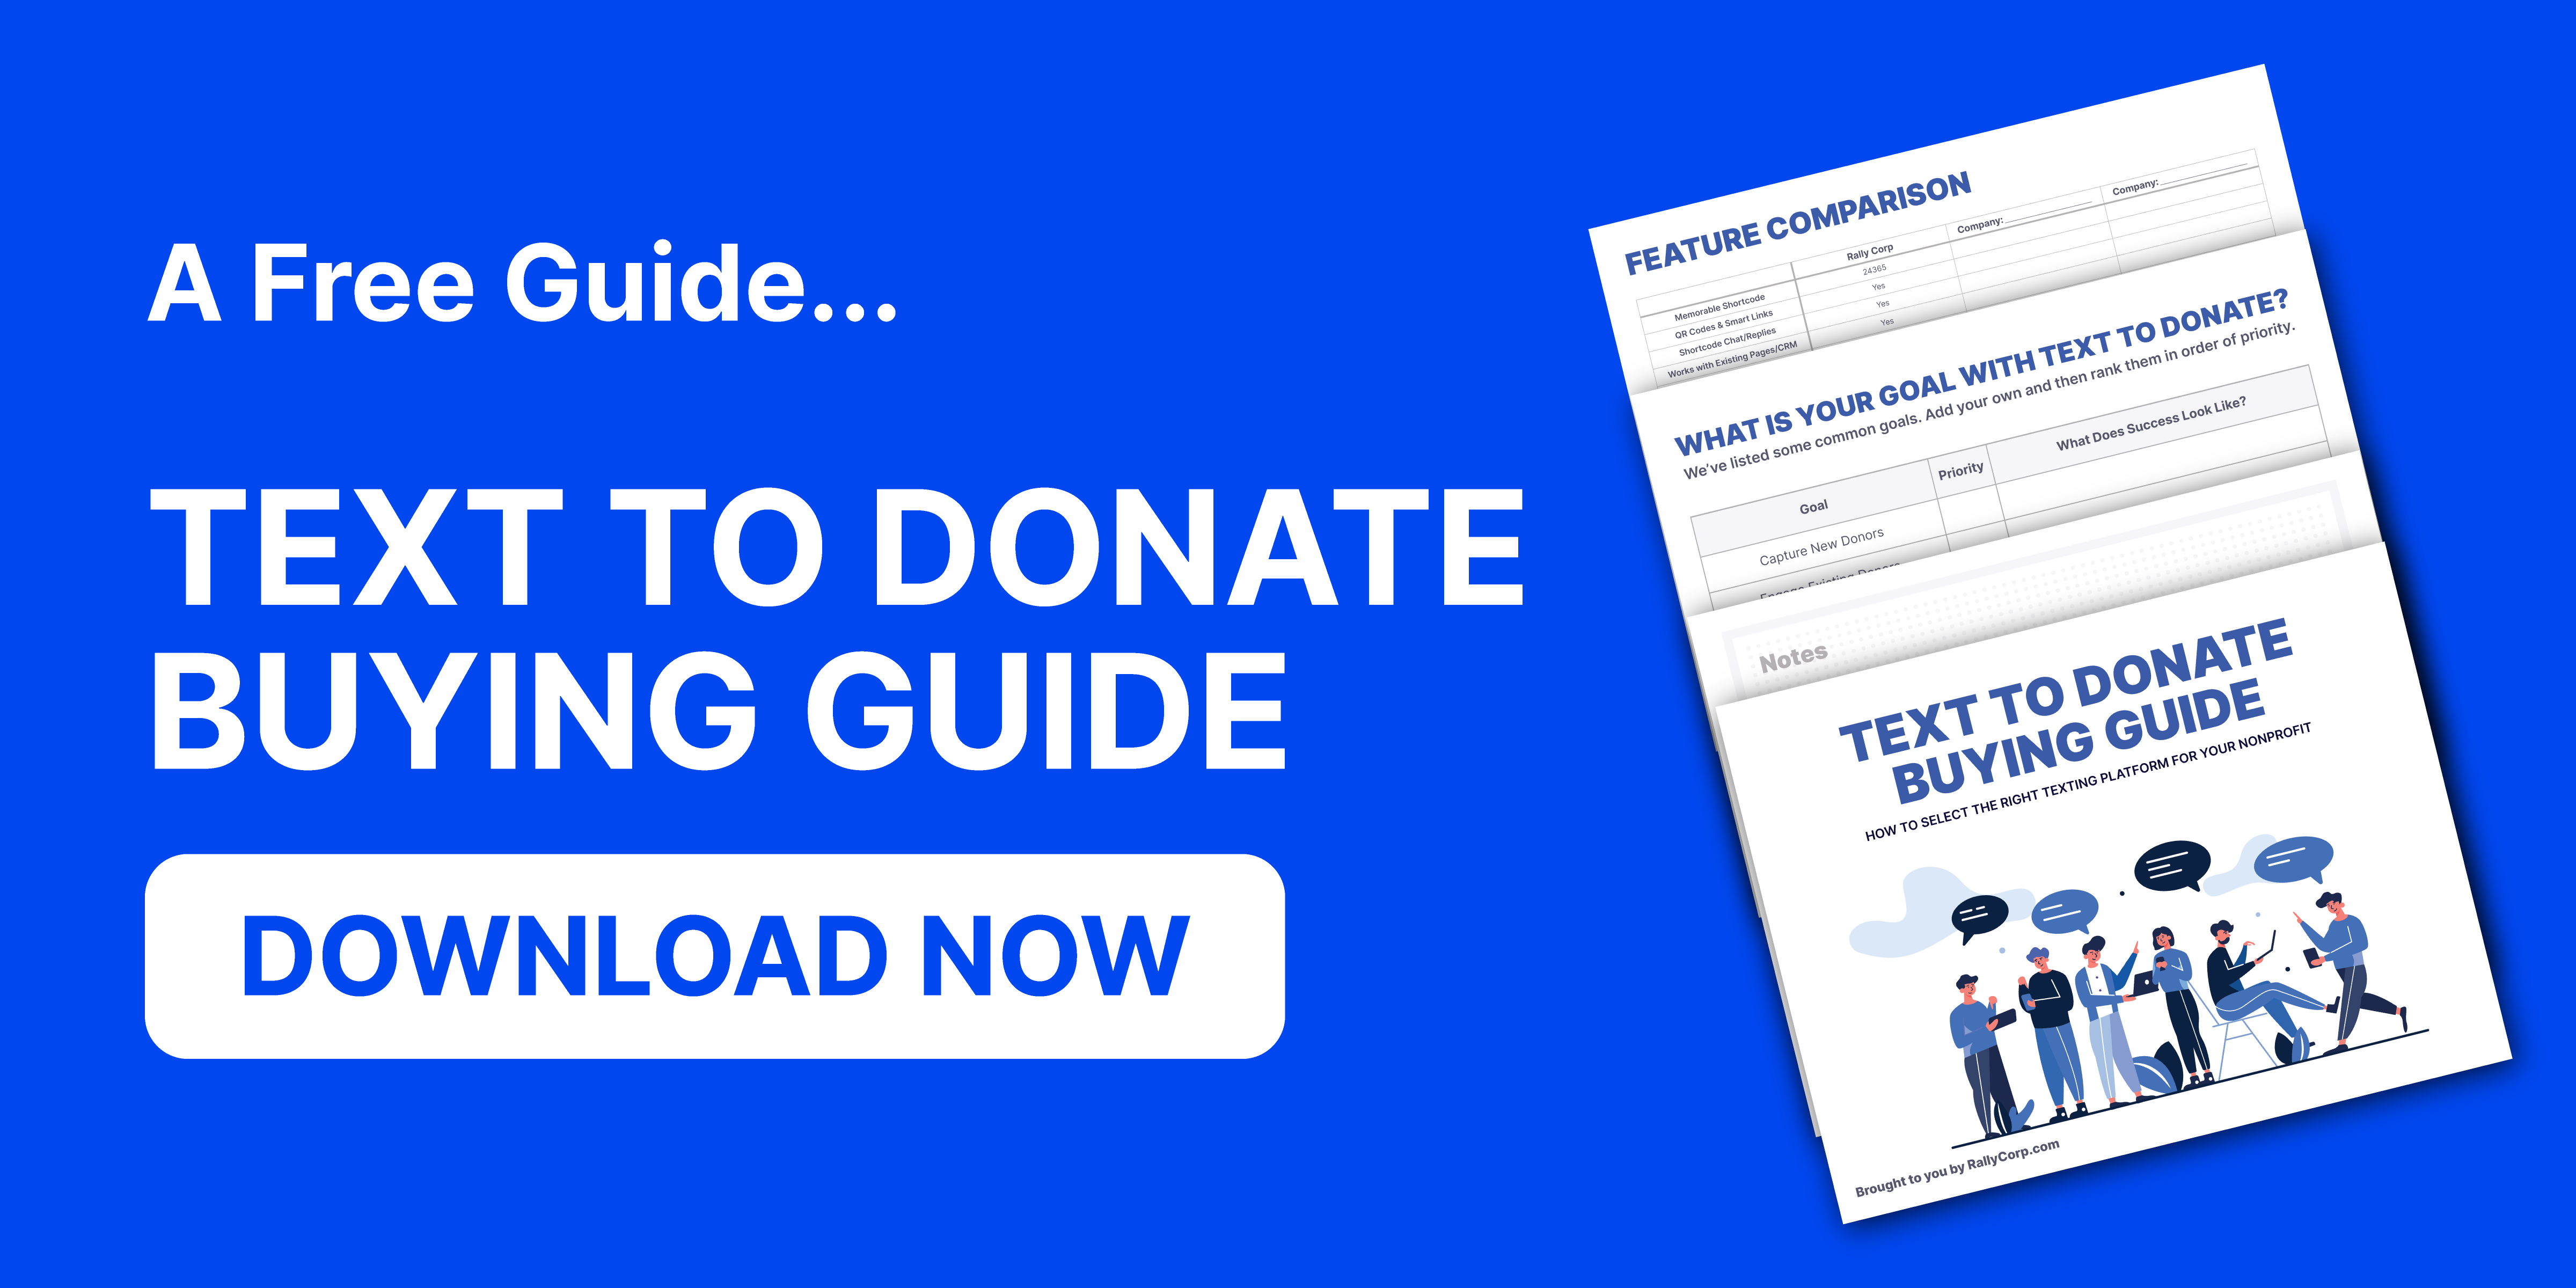 Text to Donate Buying Guide